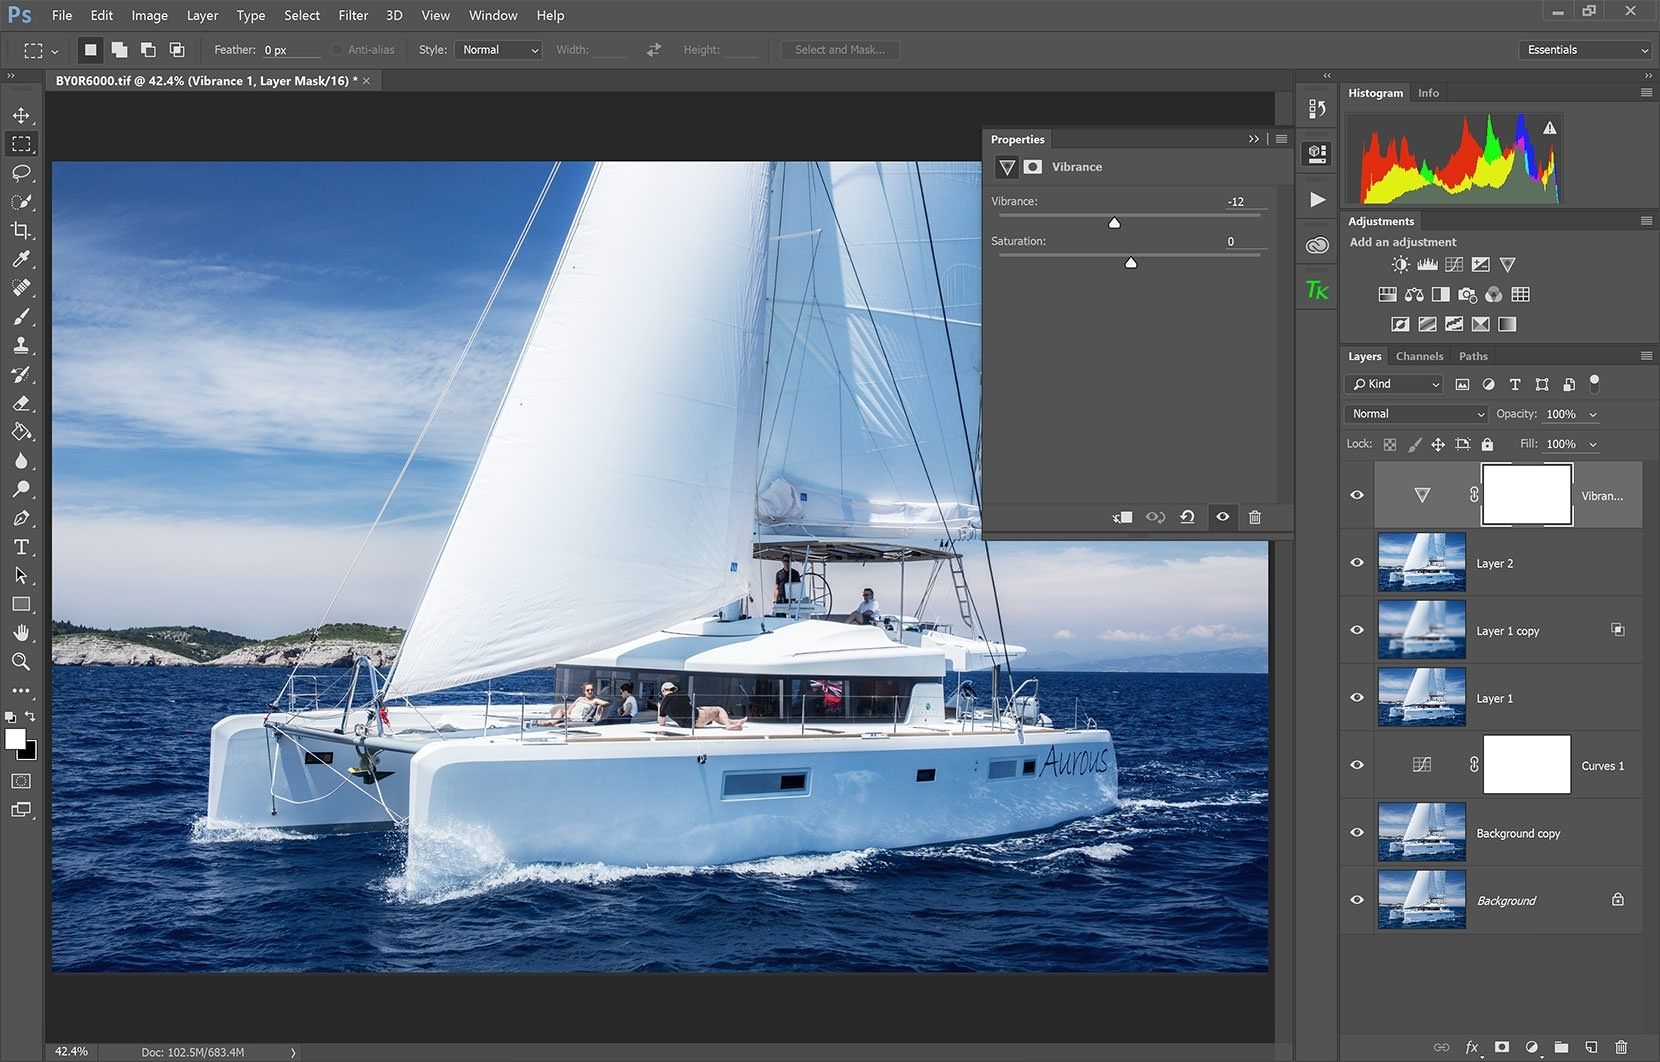 The Surface Book handled Photoshop CC 2015 without breaking sweat. It took 6 images and multiple layers to punish the processor to a slow grind - very impressive